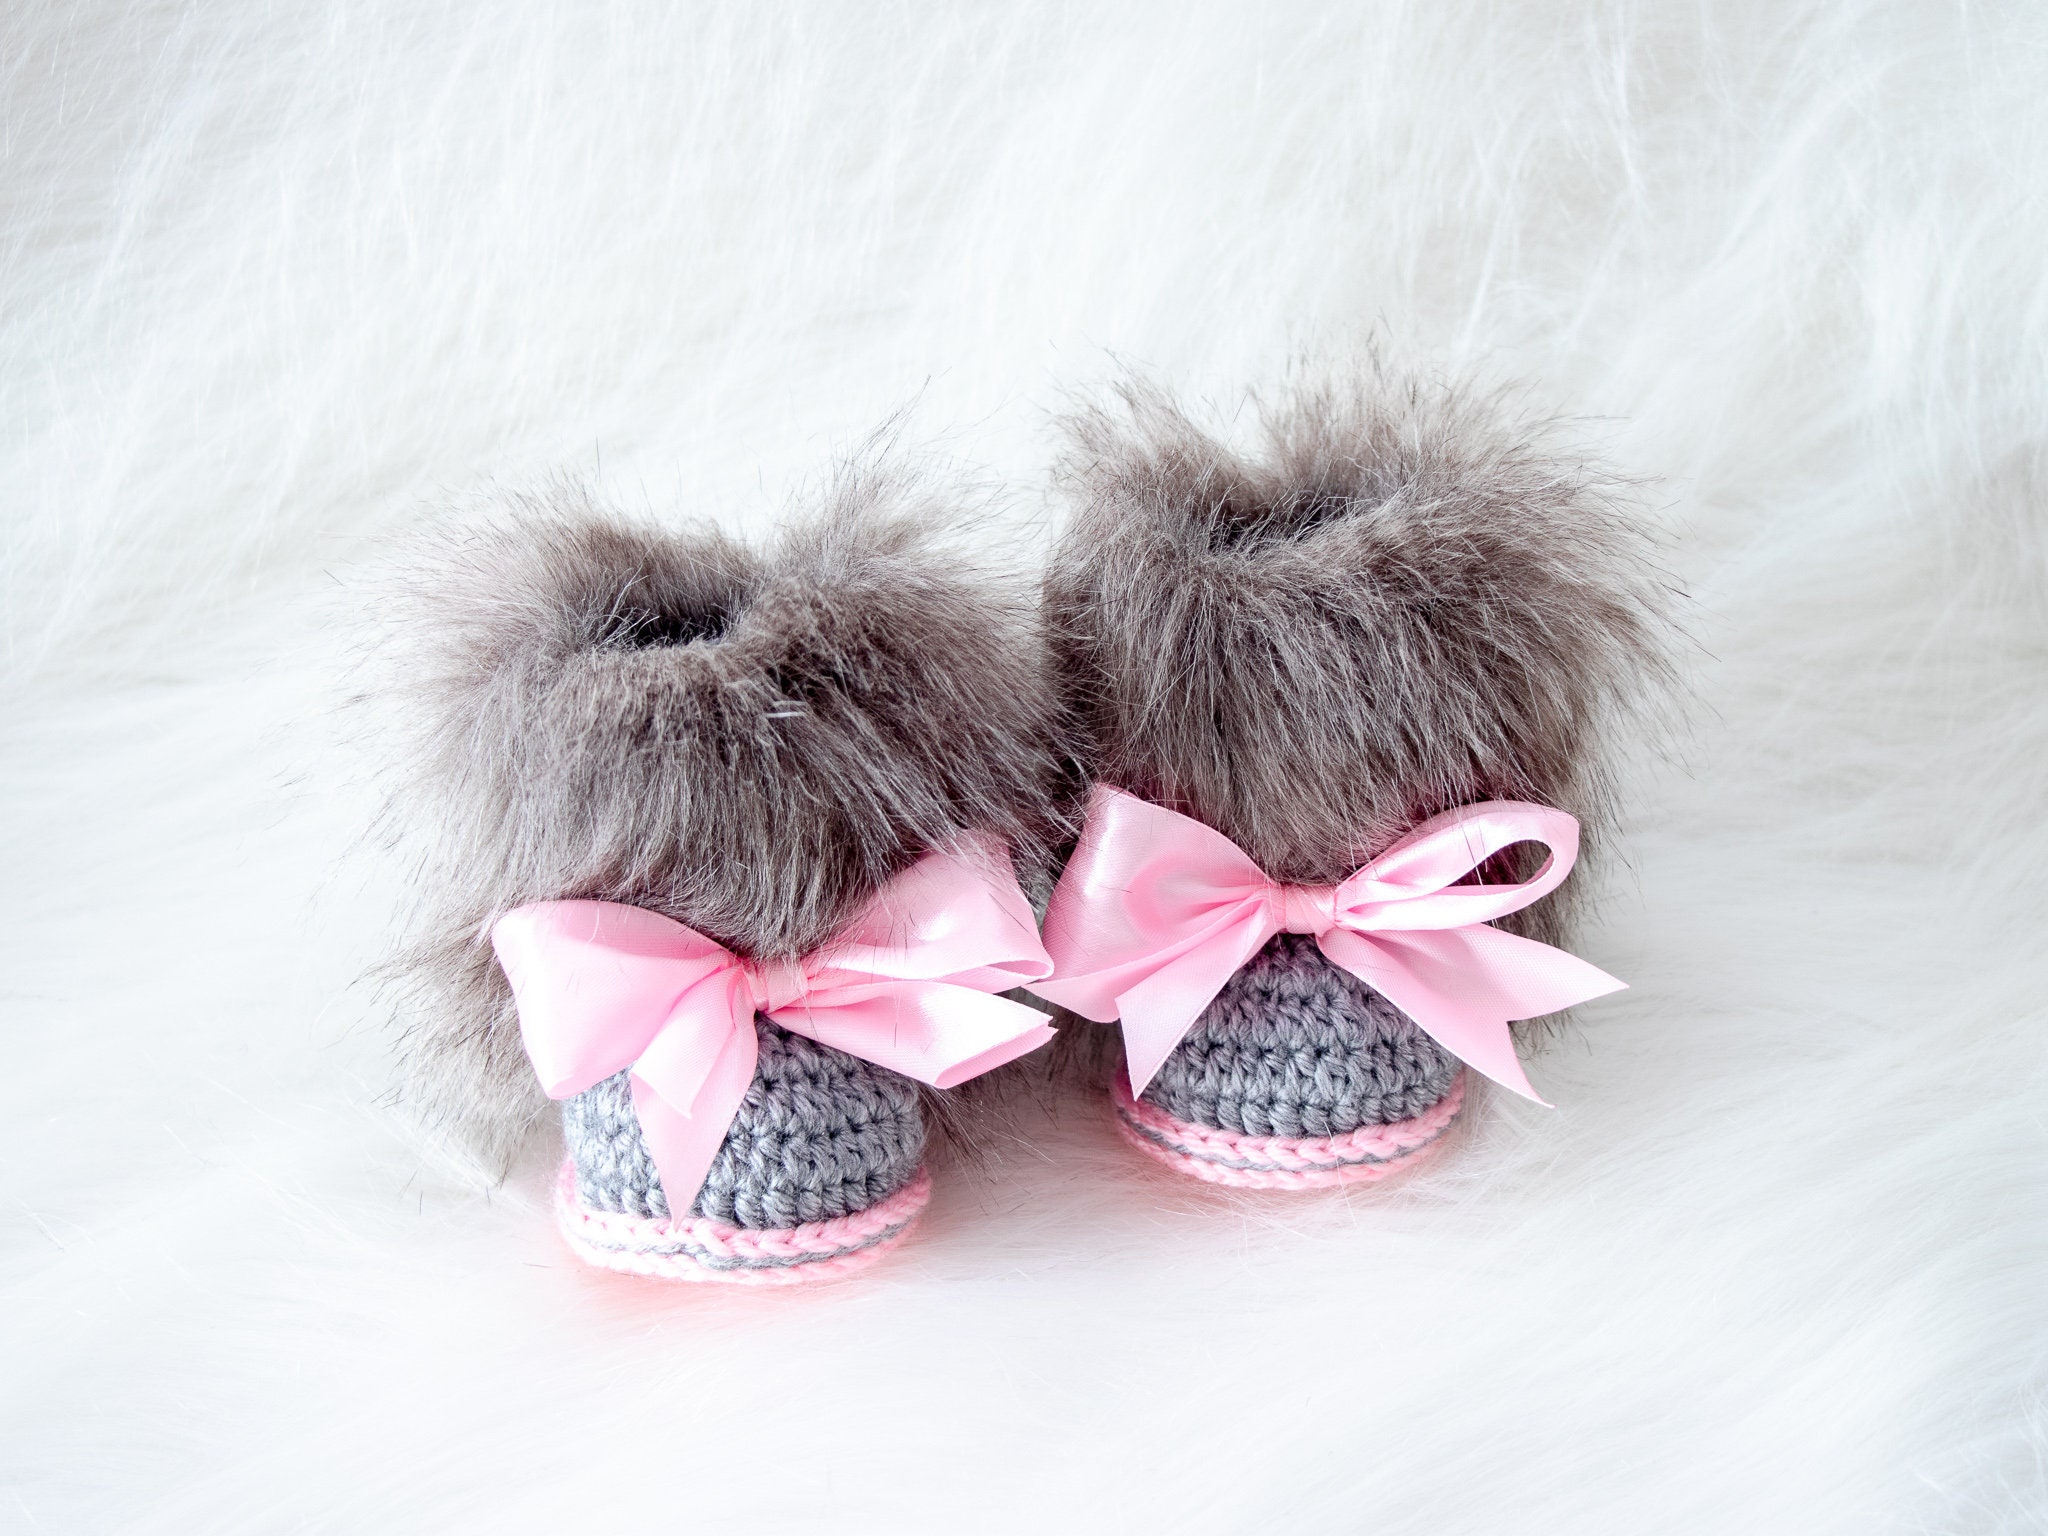 Newborn Baby Girls Shoes Booties Sandals Handmade Crochet White Gift Idea